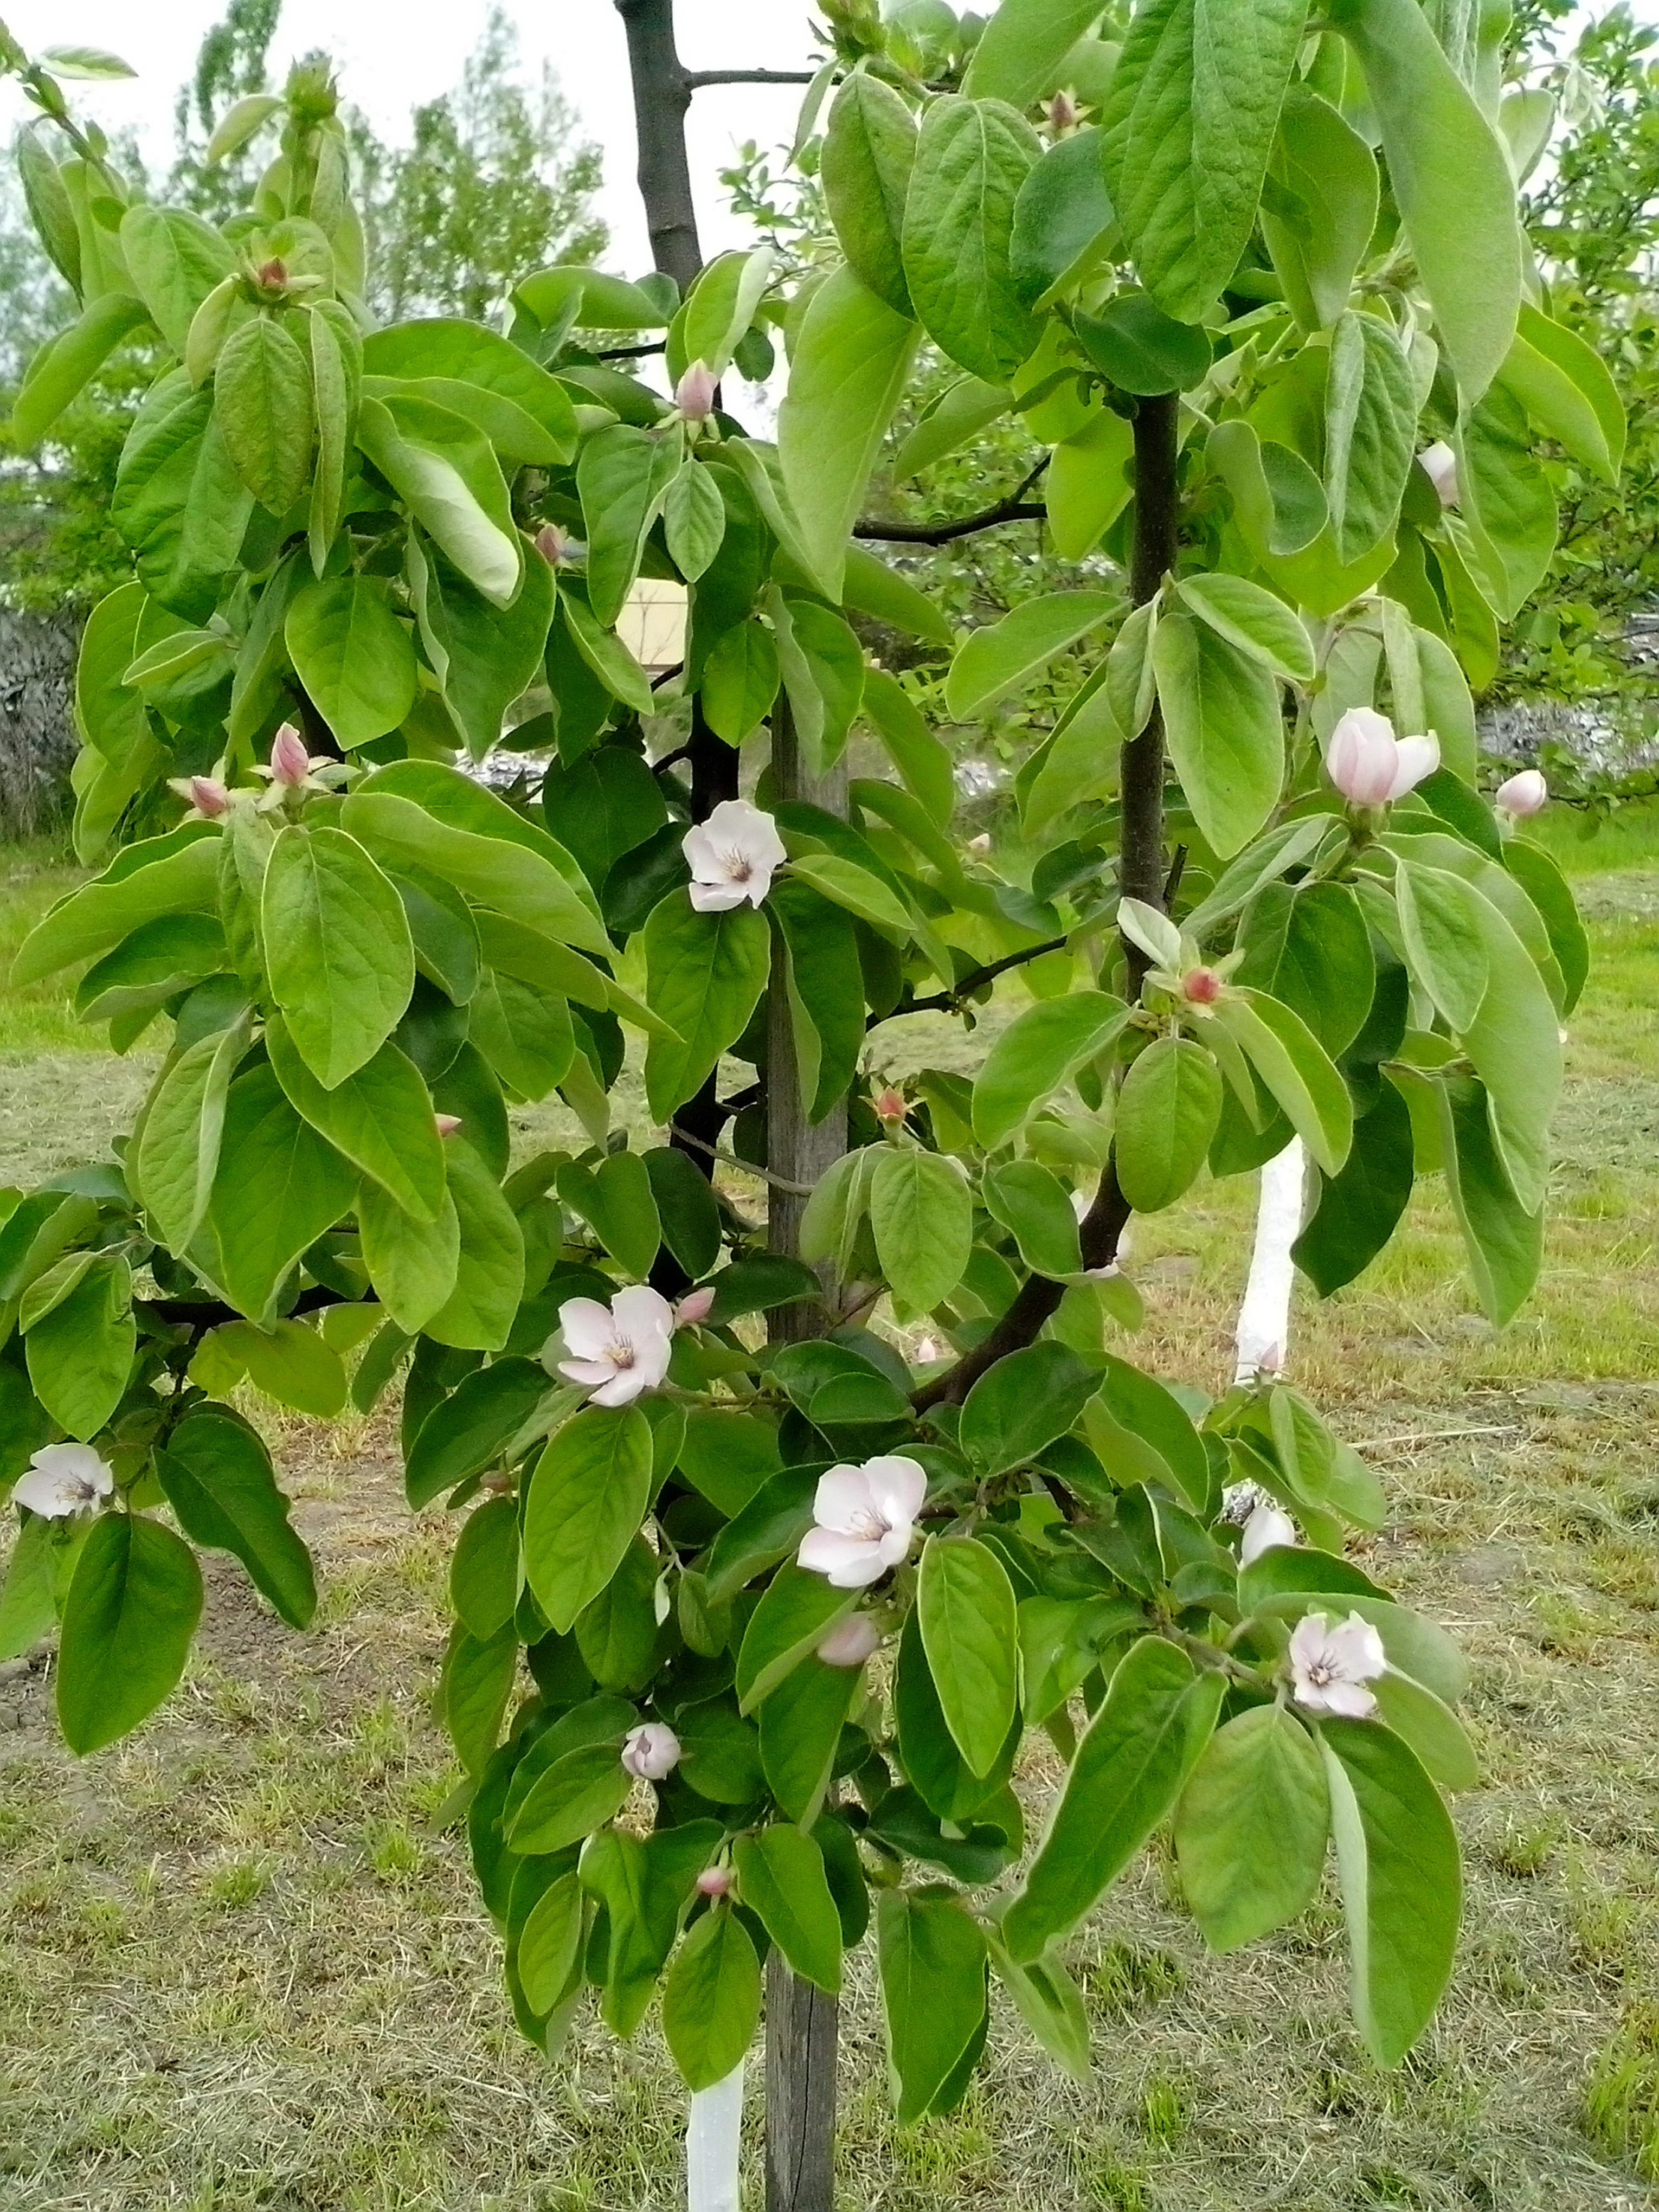 Green Light Auto >> Free picture: organic, quince, white flowers, green leaves, tree, orchard